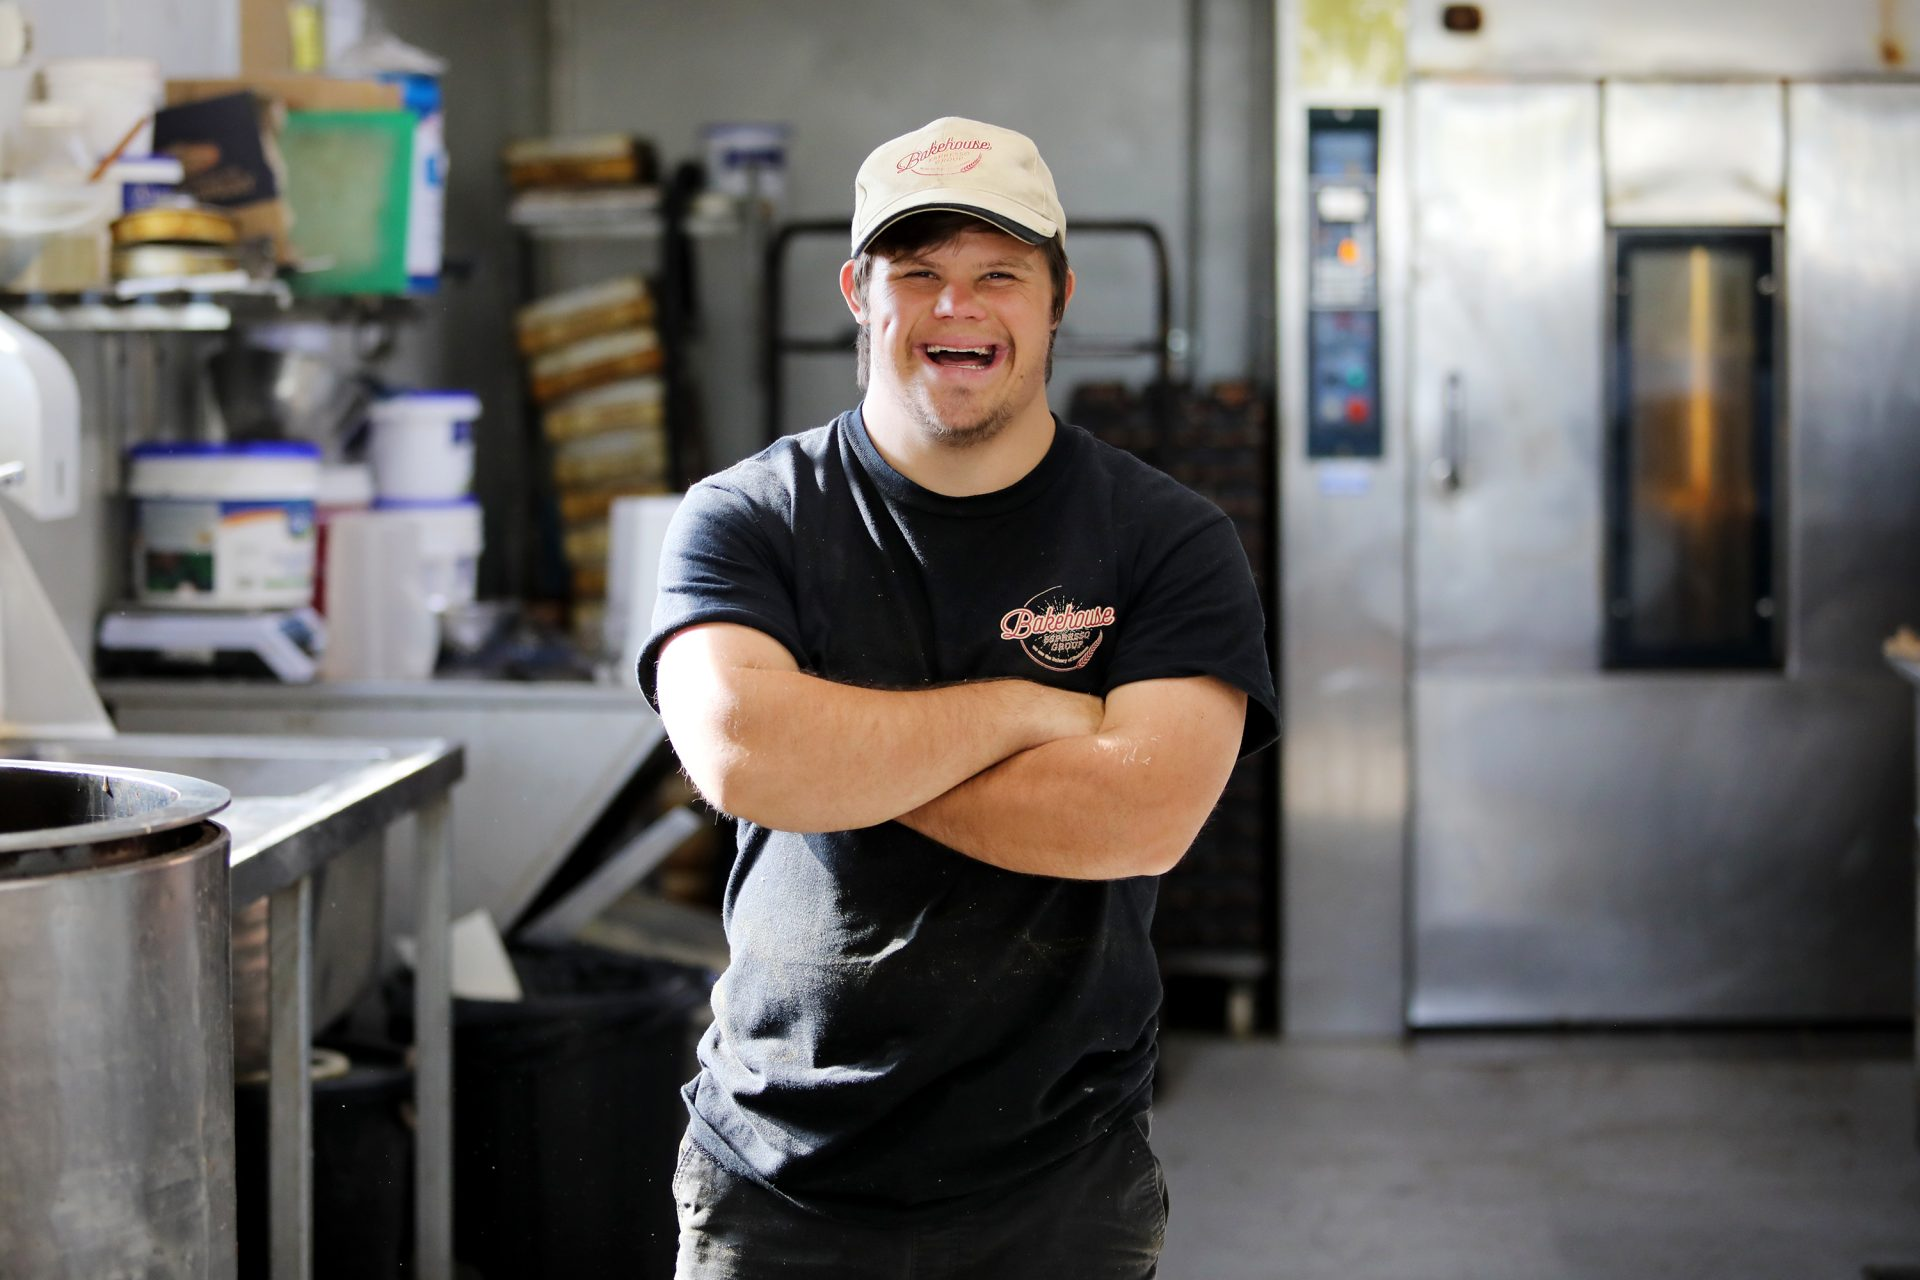 A young man with Down syndrome who is wearing a cap and folding his arms is smiling at the camera. He is standing in a bakery.